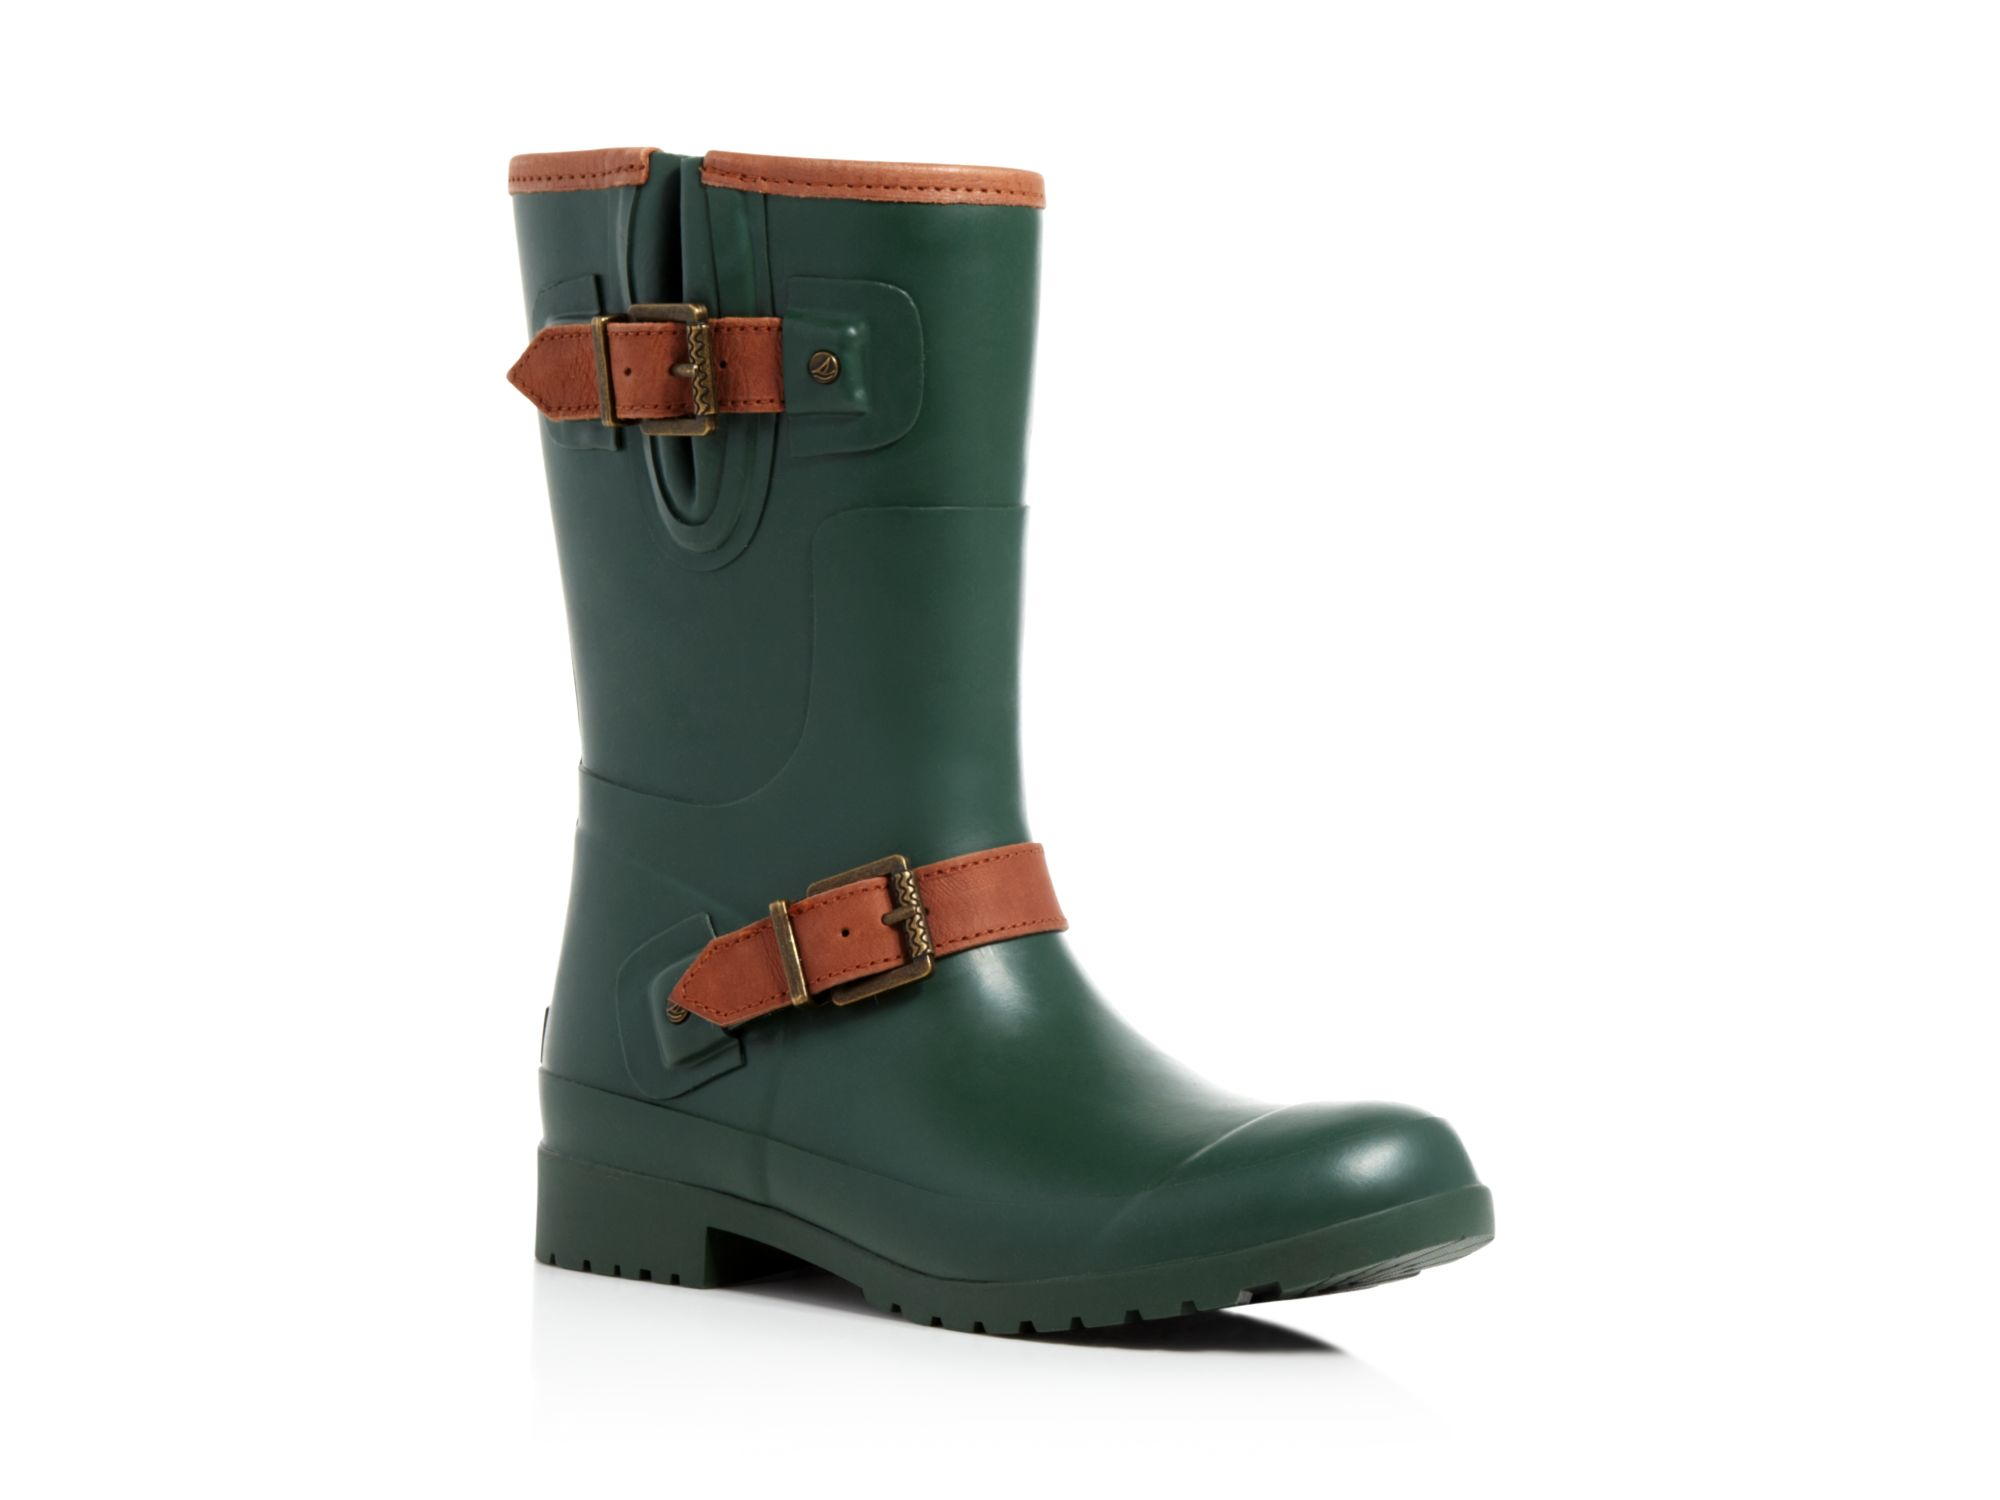 Sperry Rain Boots - Cr Boot